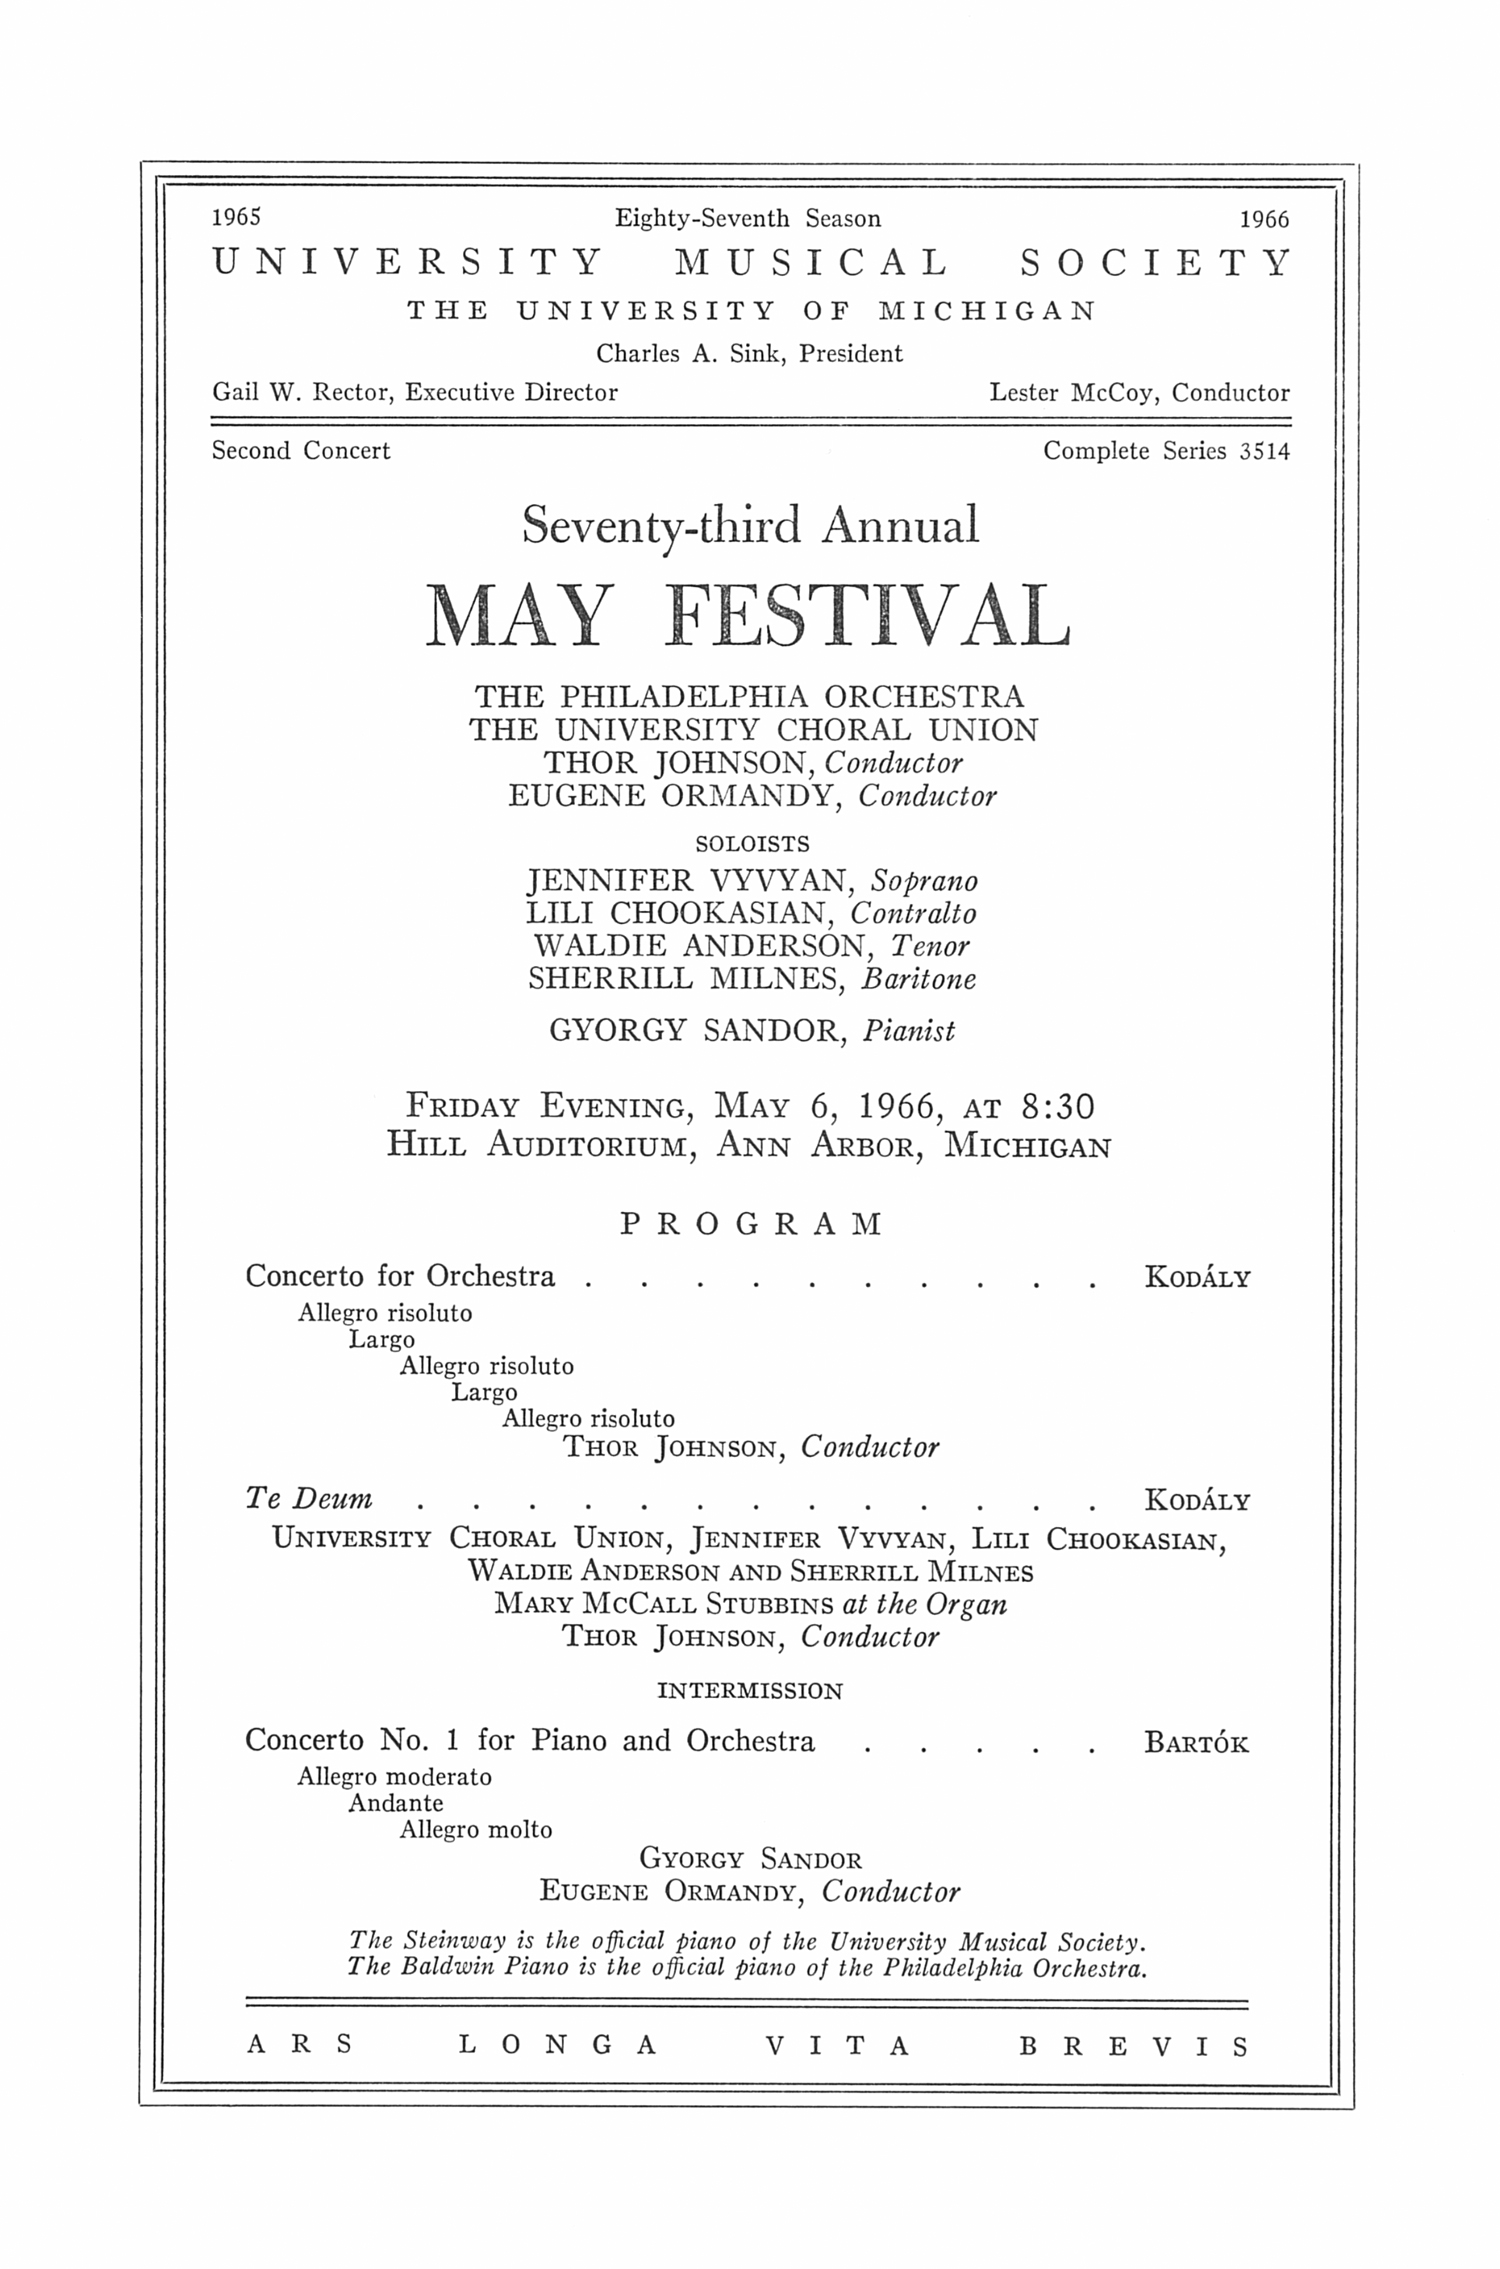 UMS Concert Program, May 6, 1966: Seventy-third Annual May Festival -- The Philadelphia Orchestra image